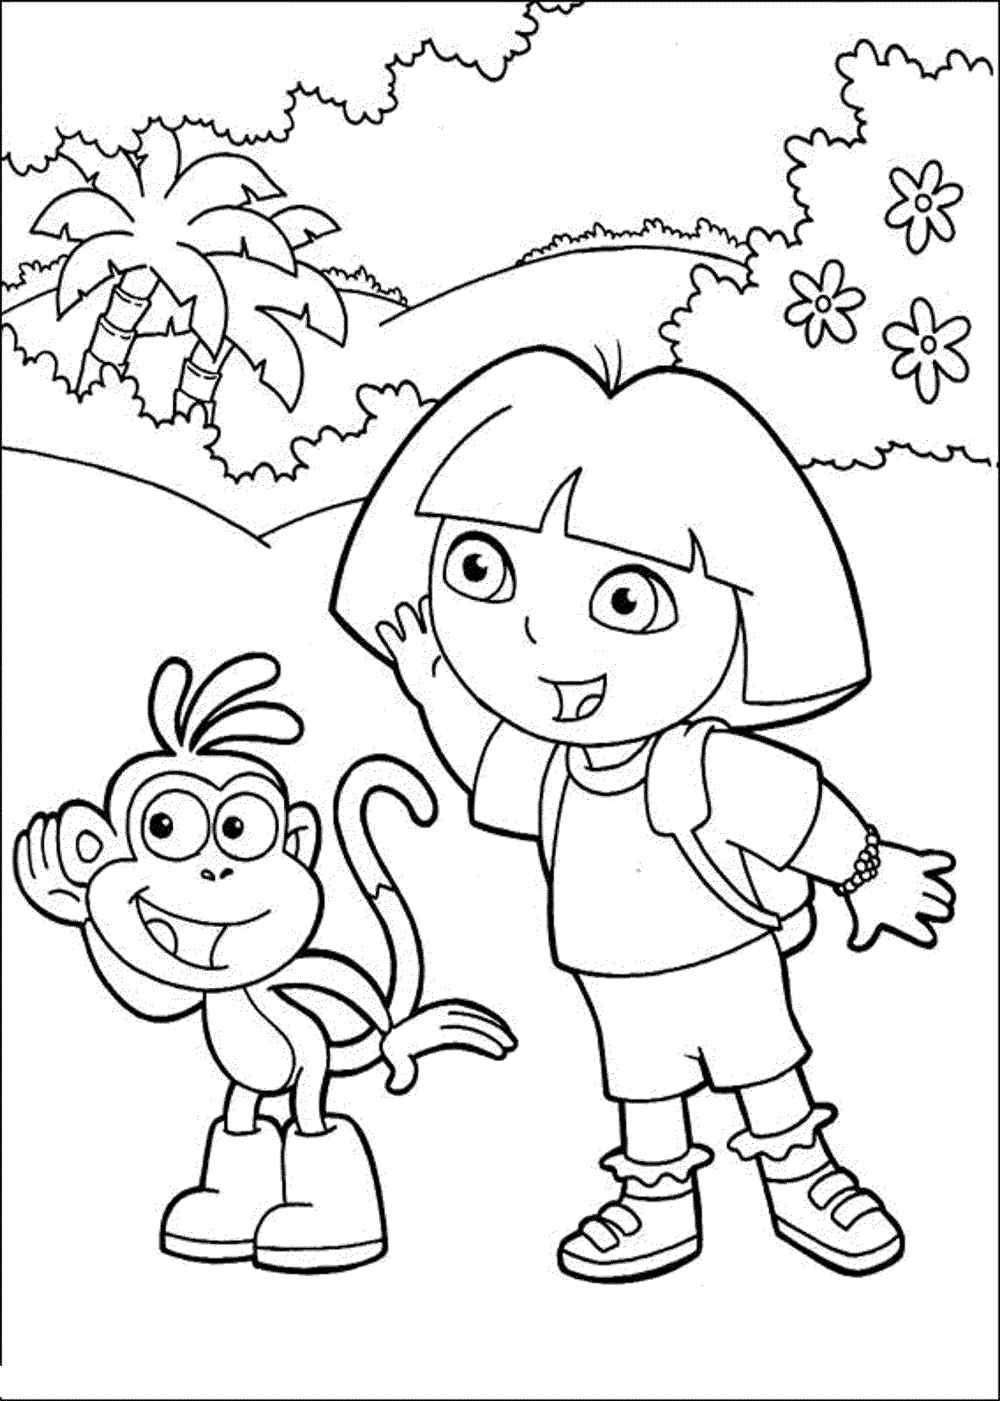 dora the explorer printable coloring pages print download dora coloring pages to learn new things the pages explorer dora coloring printable